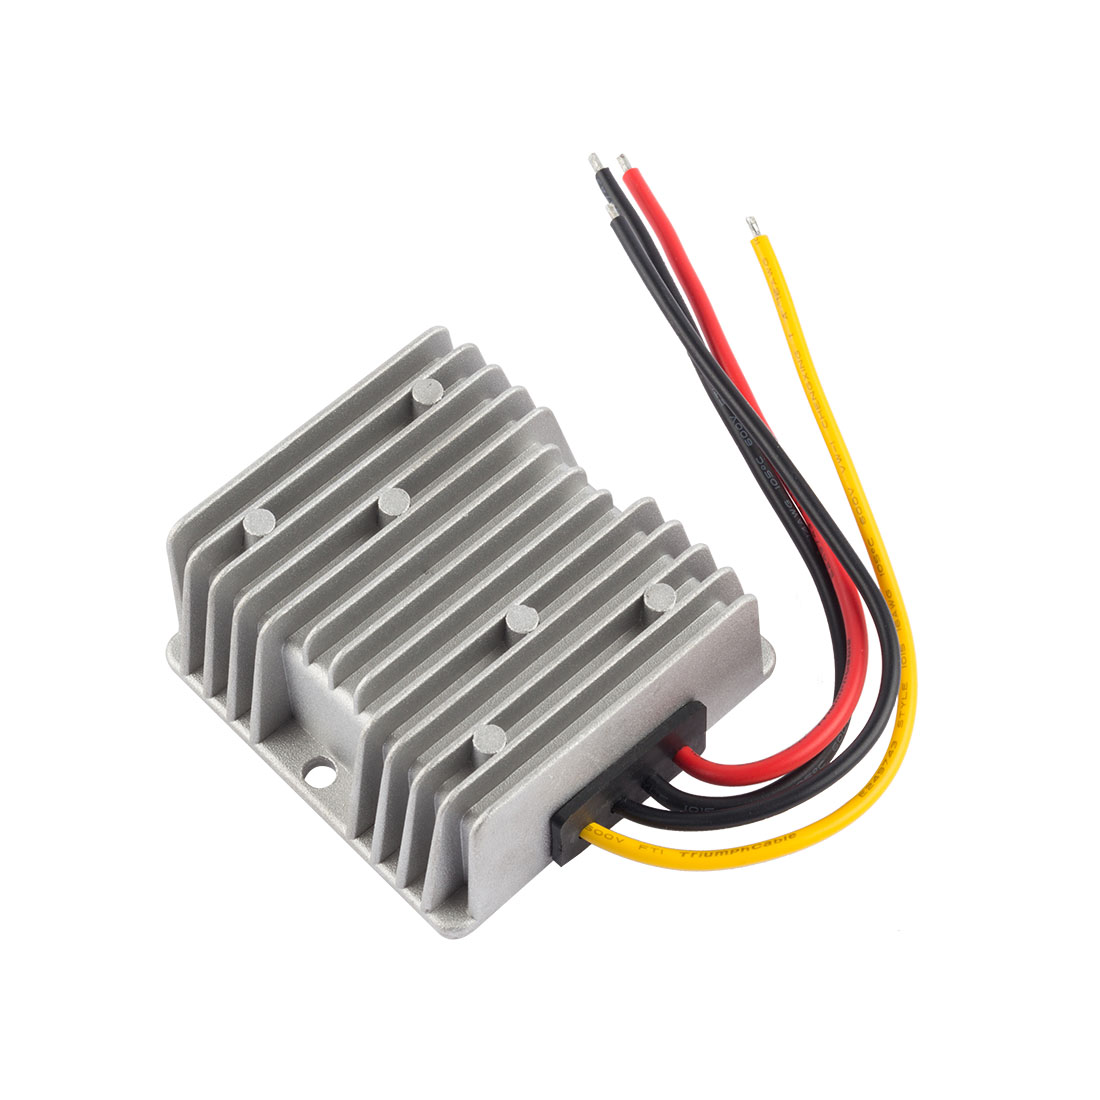 uxcell Power Converter Regulator DC 24V(19V~35V) to DC 12V 10A 120W Waterproof Voltage Convert Transformer